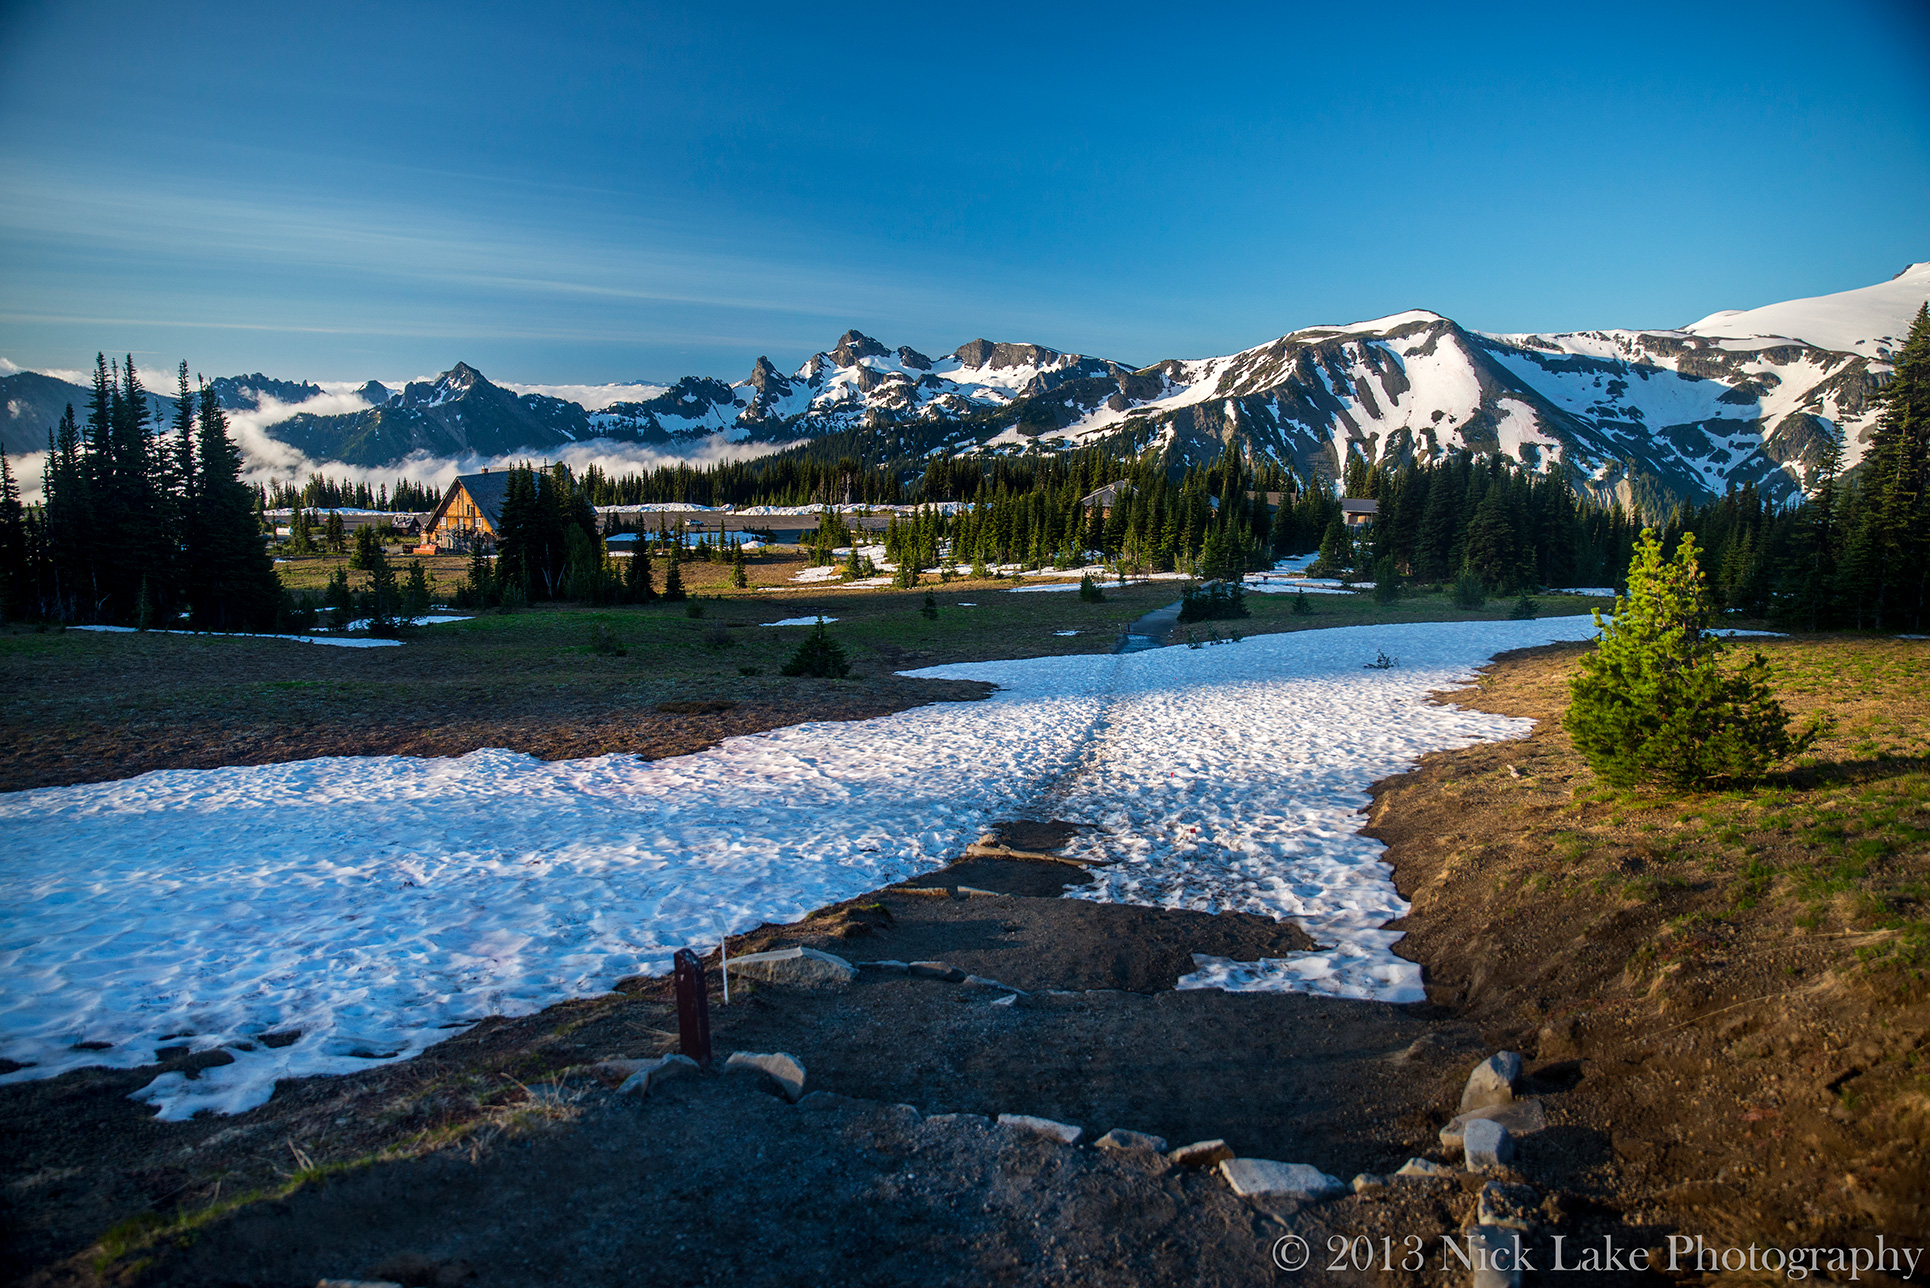 The visitor's center at Sunrise Point begins to thaw after a brisk summer night at 6500 feet